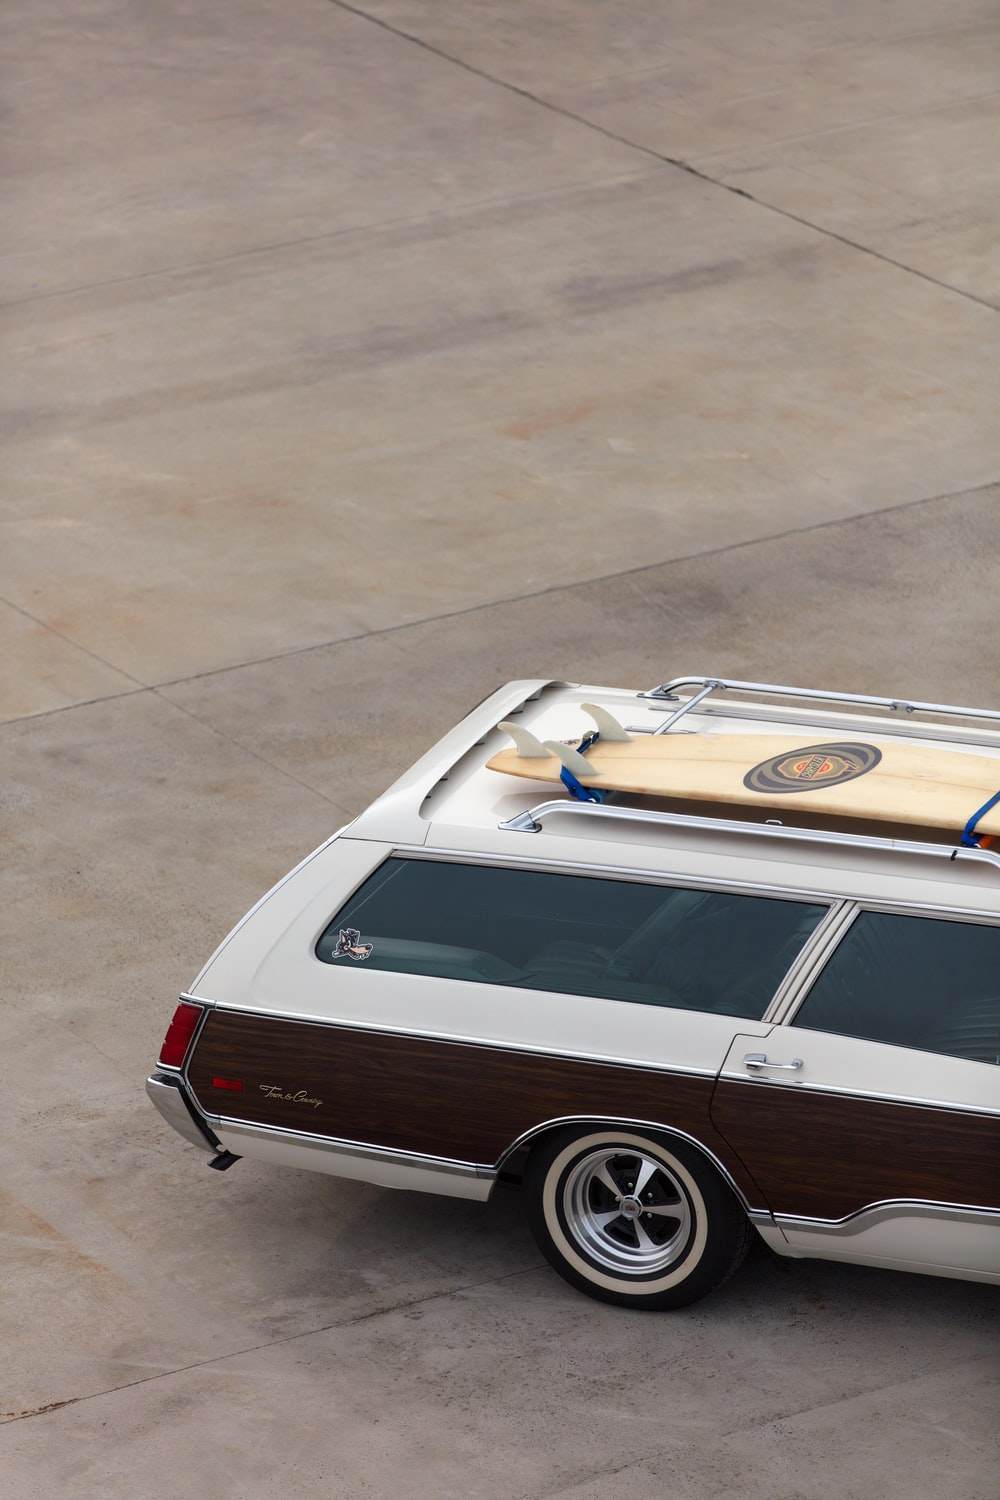 white and brown station wagon